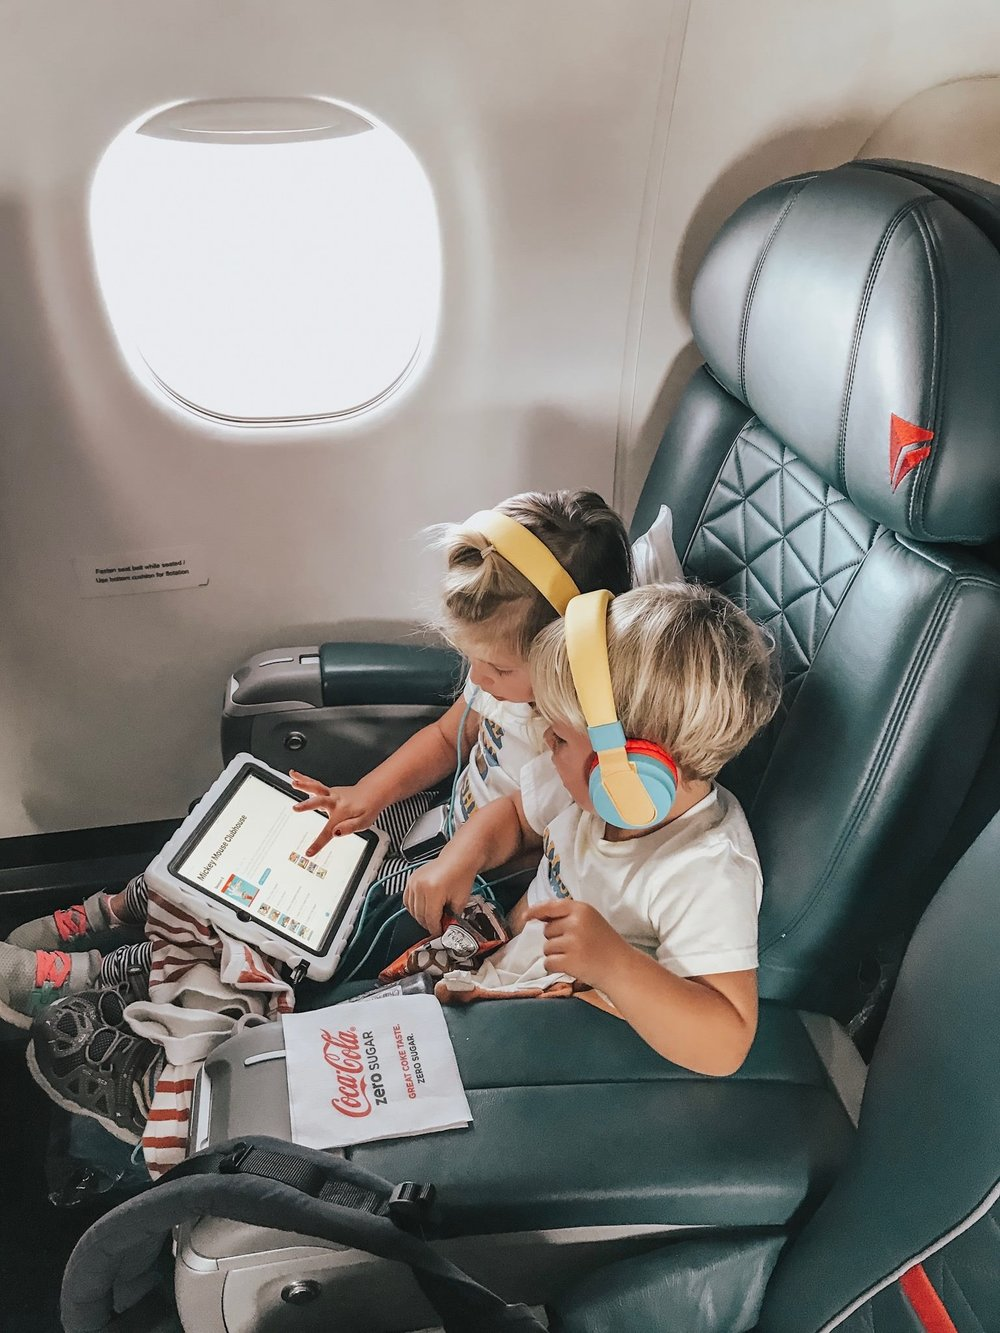 The kids playing on their iPad